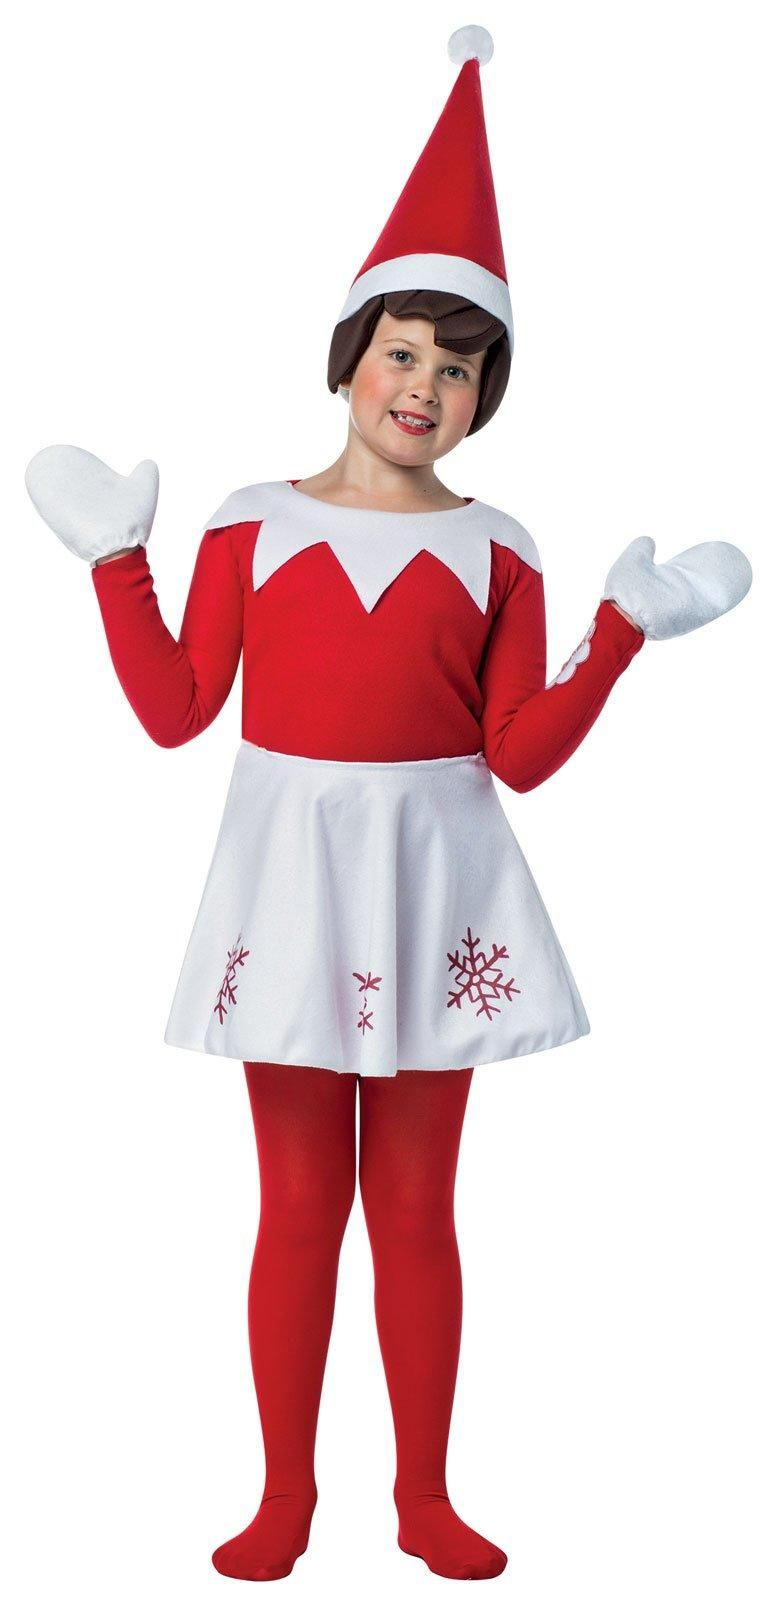 girls elf on the shelf dress costume from costumeexpress